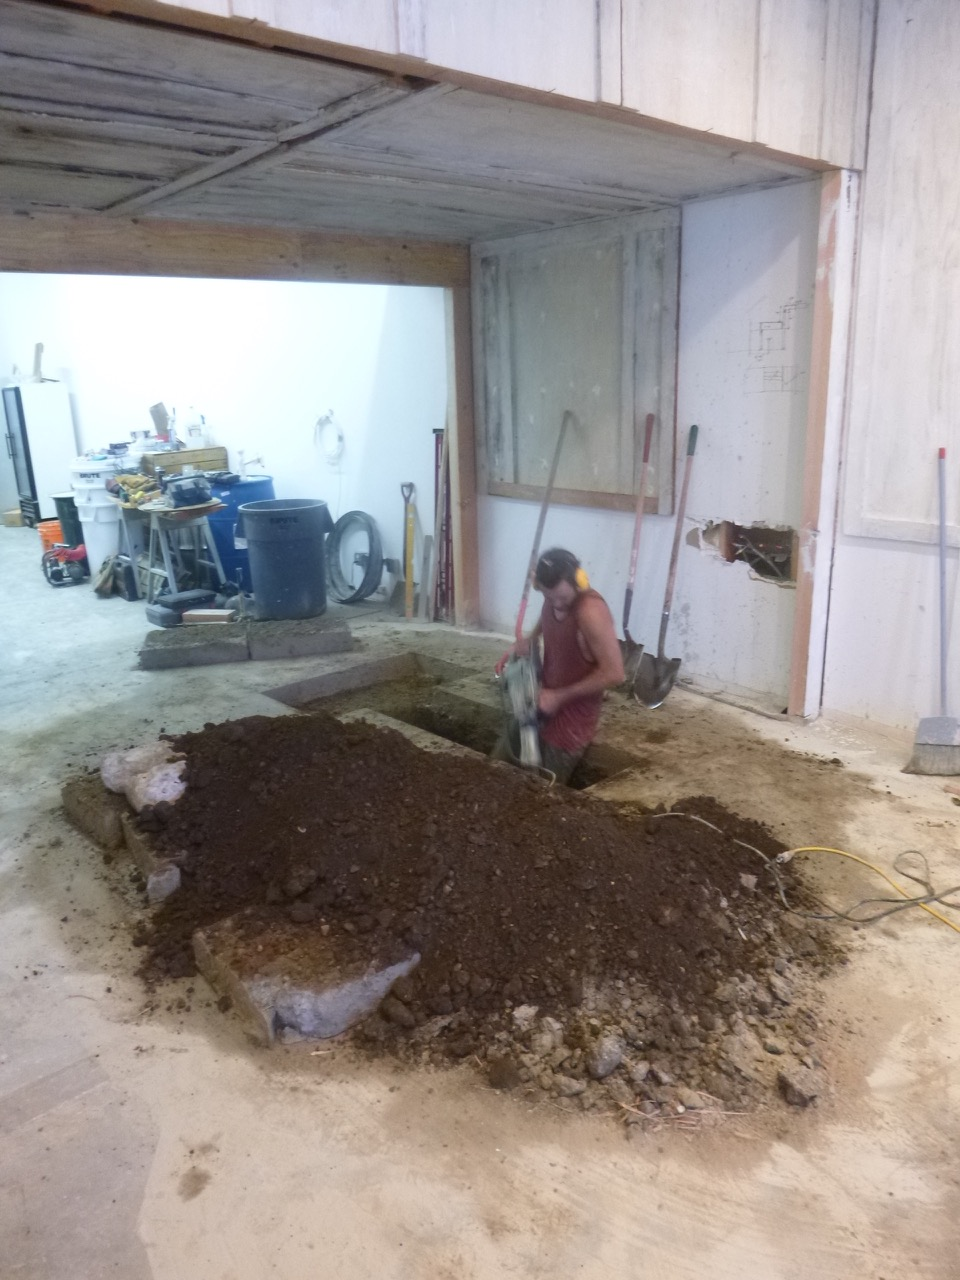 In search of the building's main drain line: Creative director, brewmaster, and owner Nole Cossart digging deep. Note the salvaged wall panels from discarded furniture storage units.